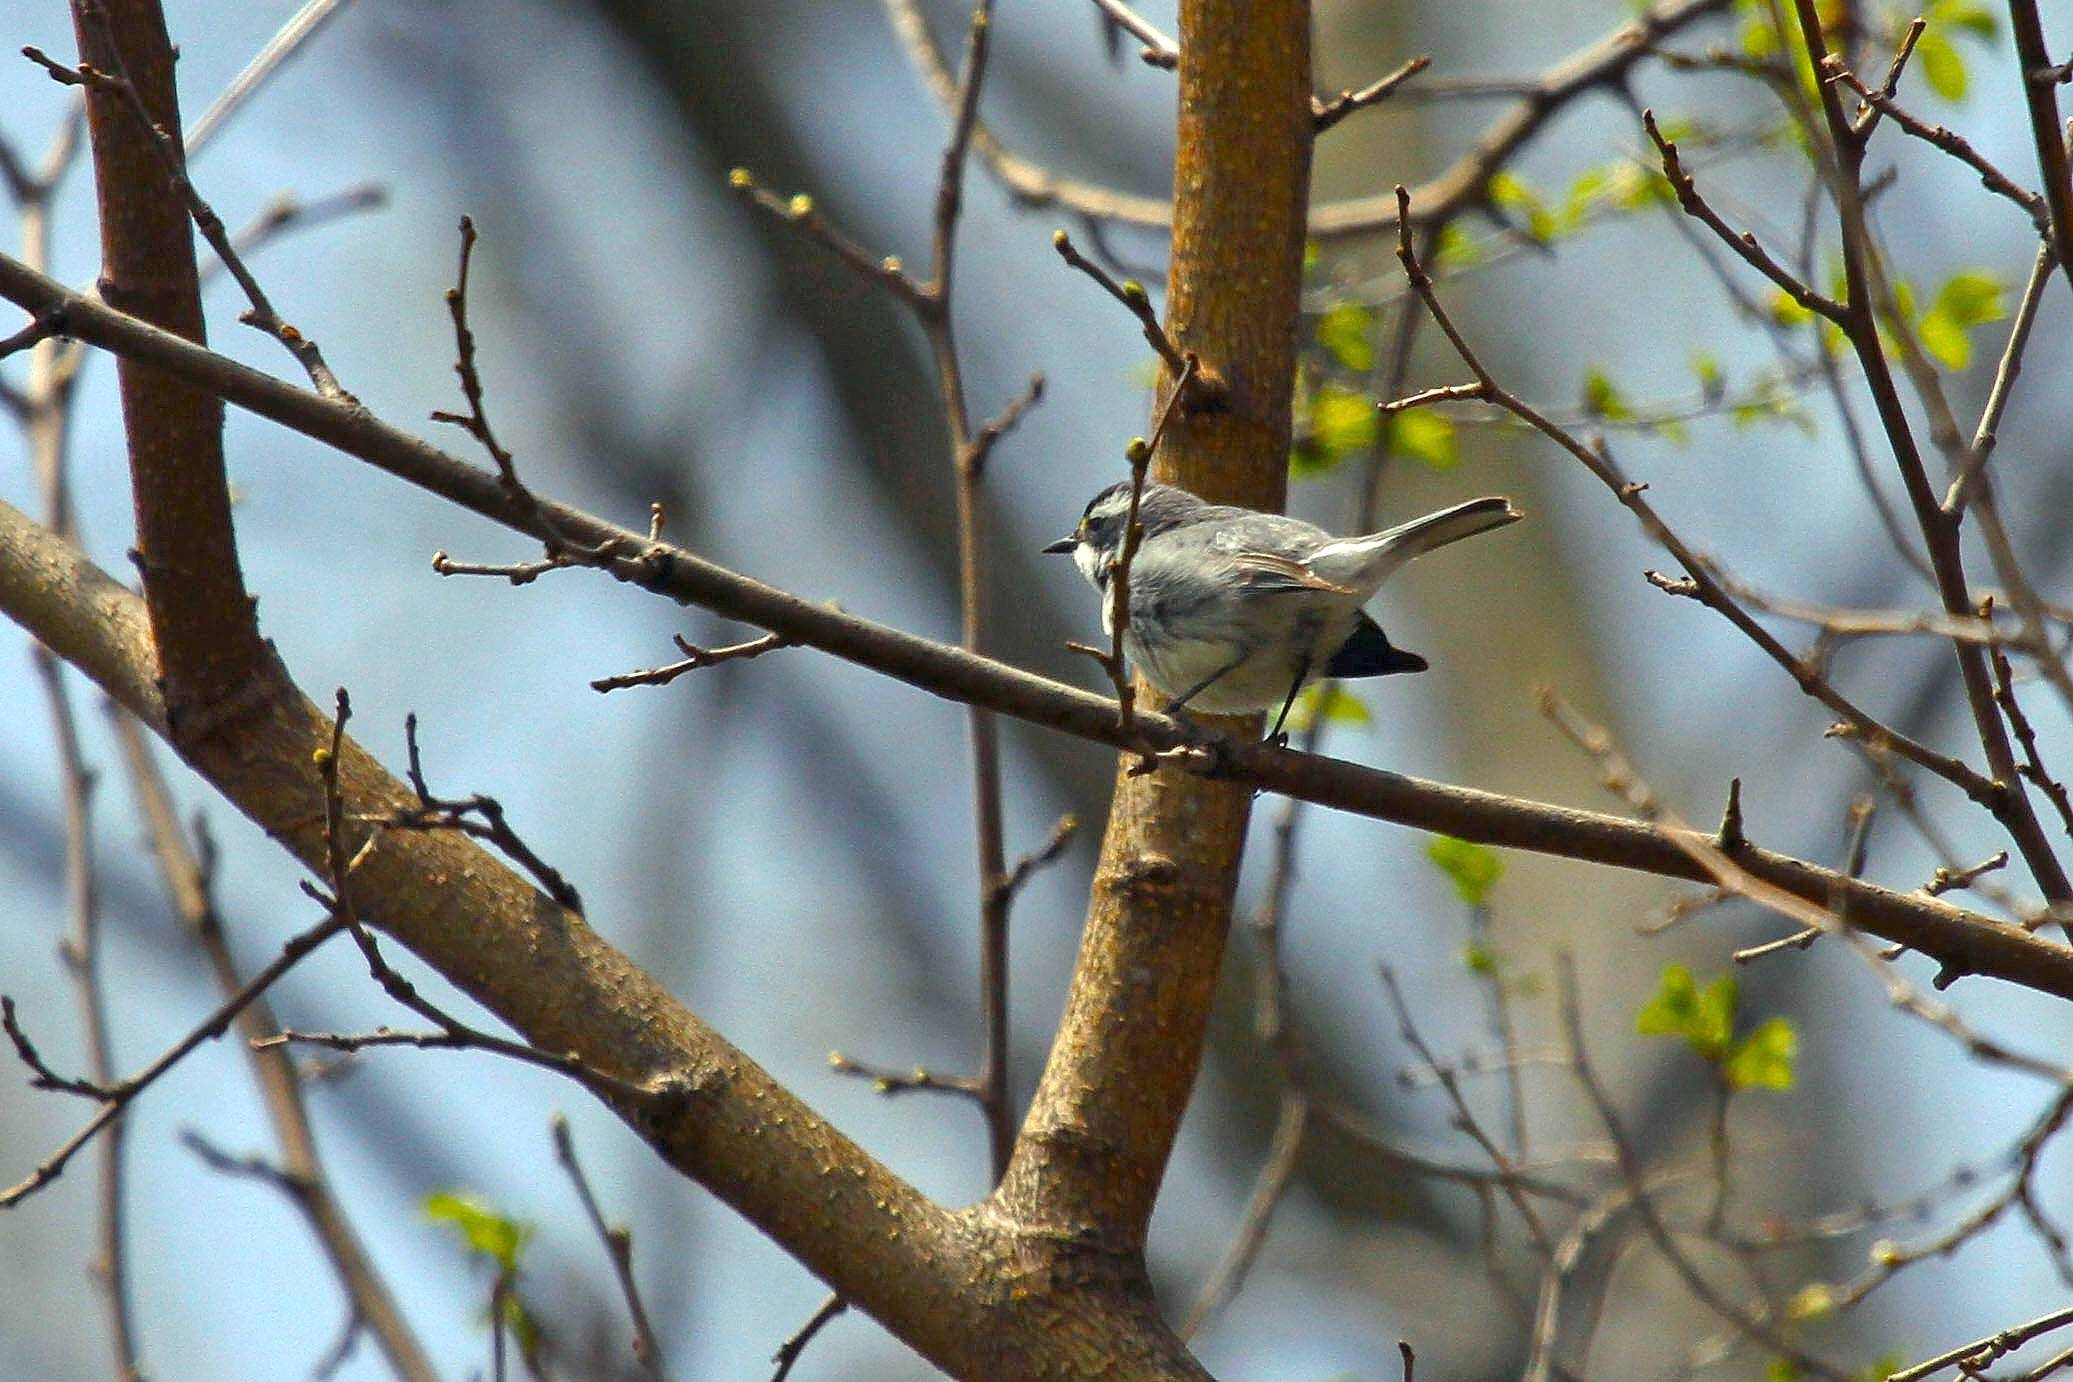 Birder and Judson University employee Eric Secker recently spotted a Black-throated Gray Warbler on campus. The bird, normally found along the West Coast, from California and Washington east to Colorado, strayed from its normal migration path and found its way to the 90-acre campus in Elgin.